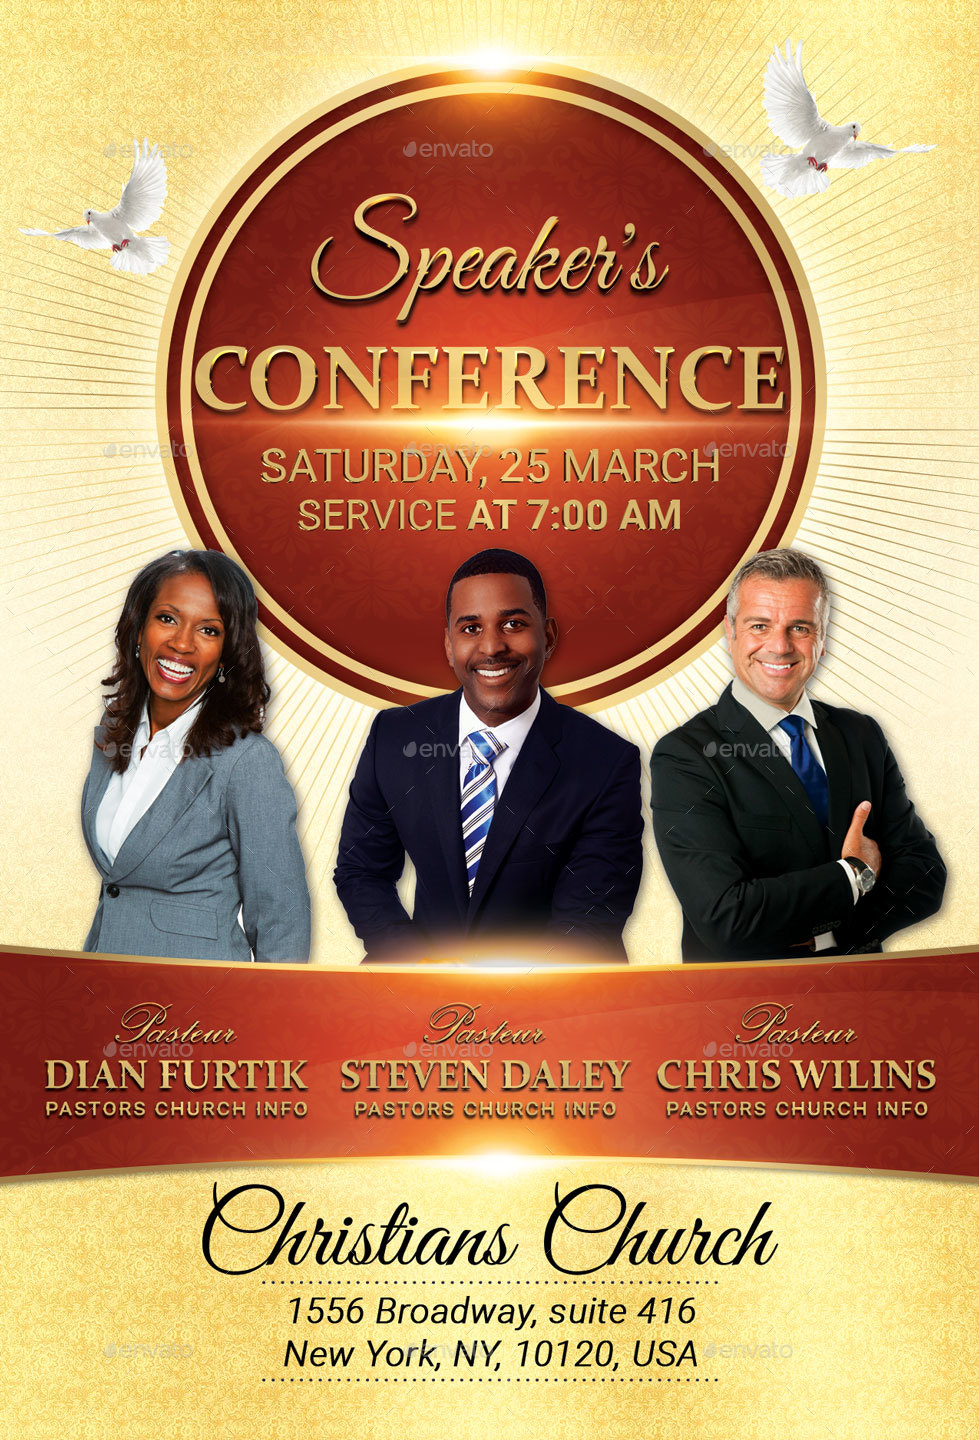 speakers conference church flyer 100 fully layered psd